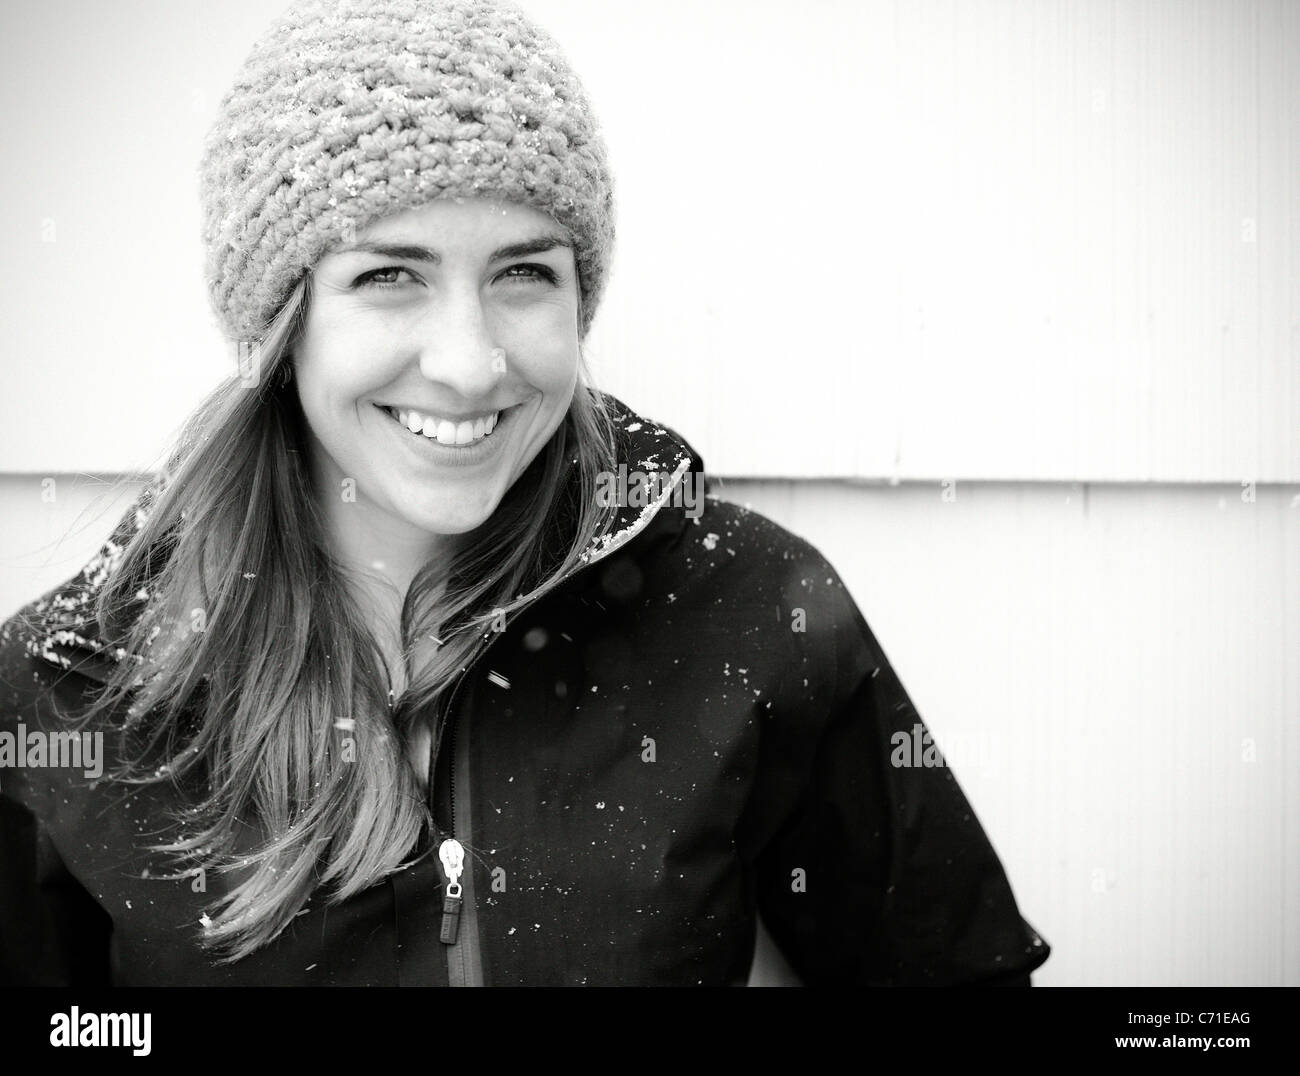 A woman with a hat smiles. - Stock Image